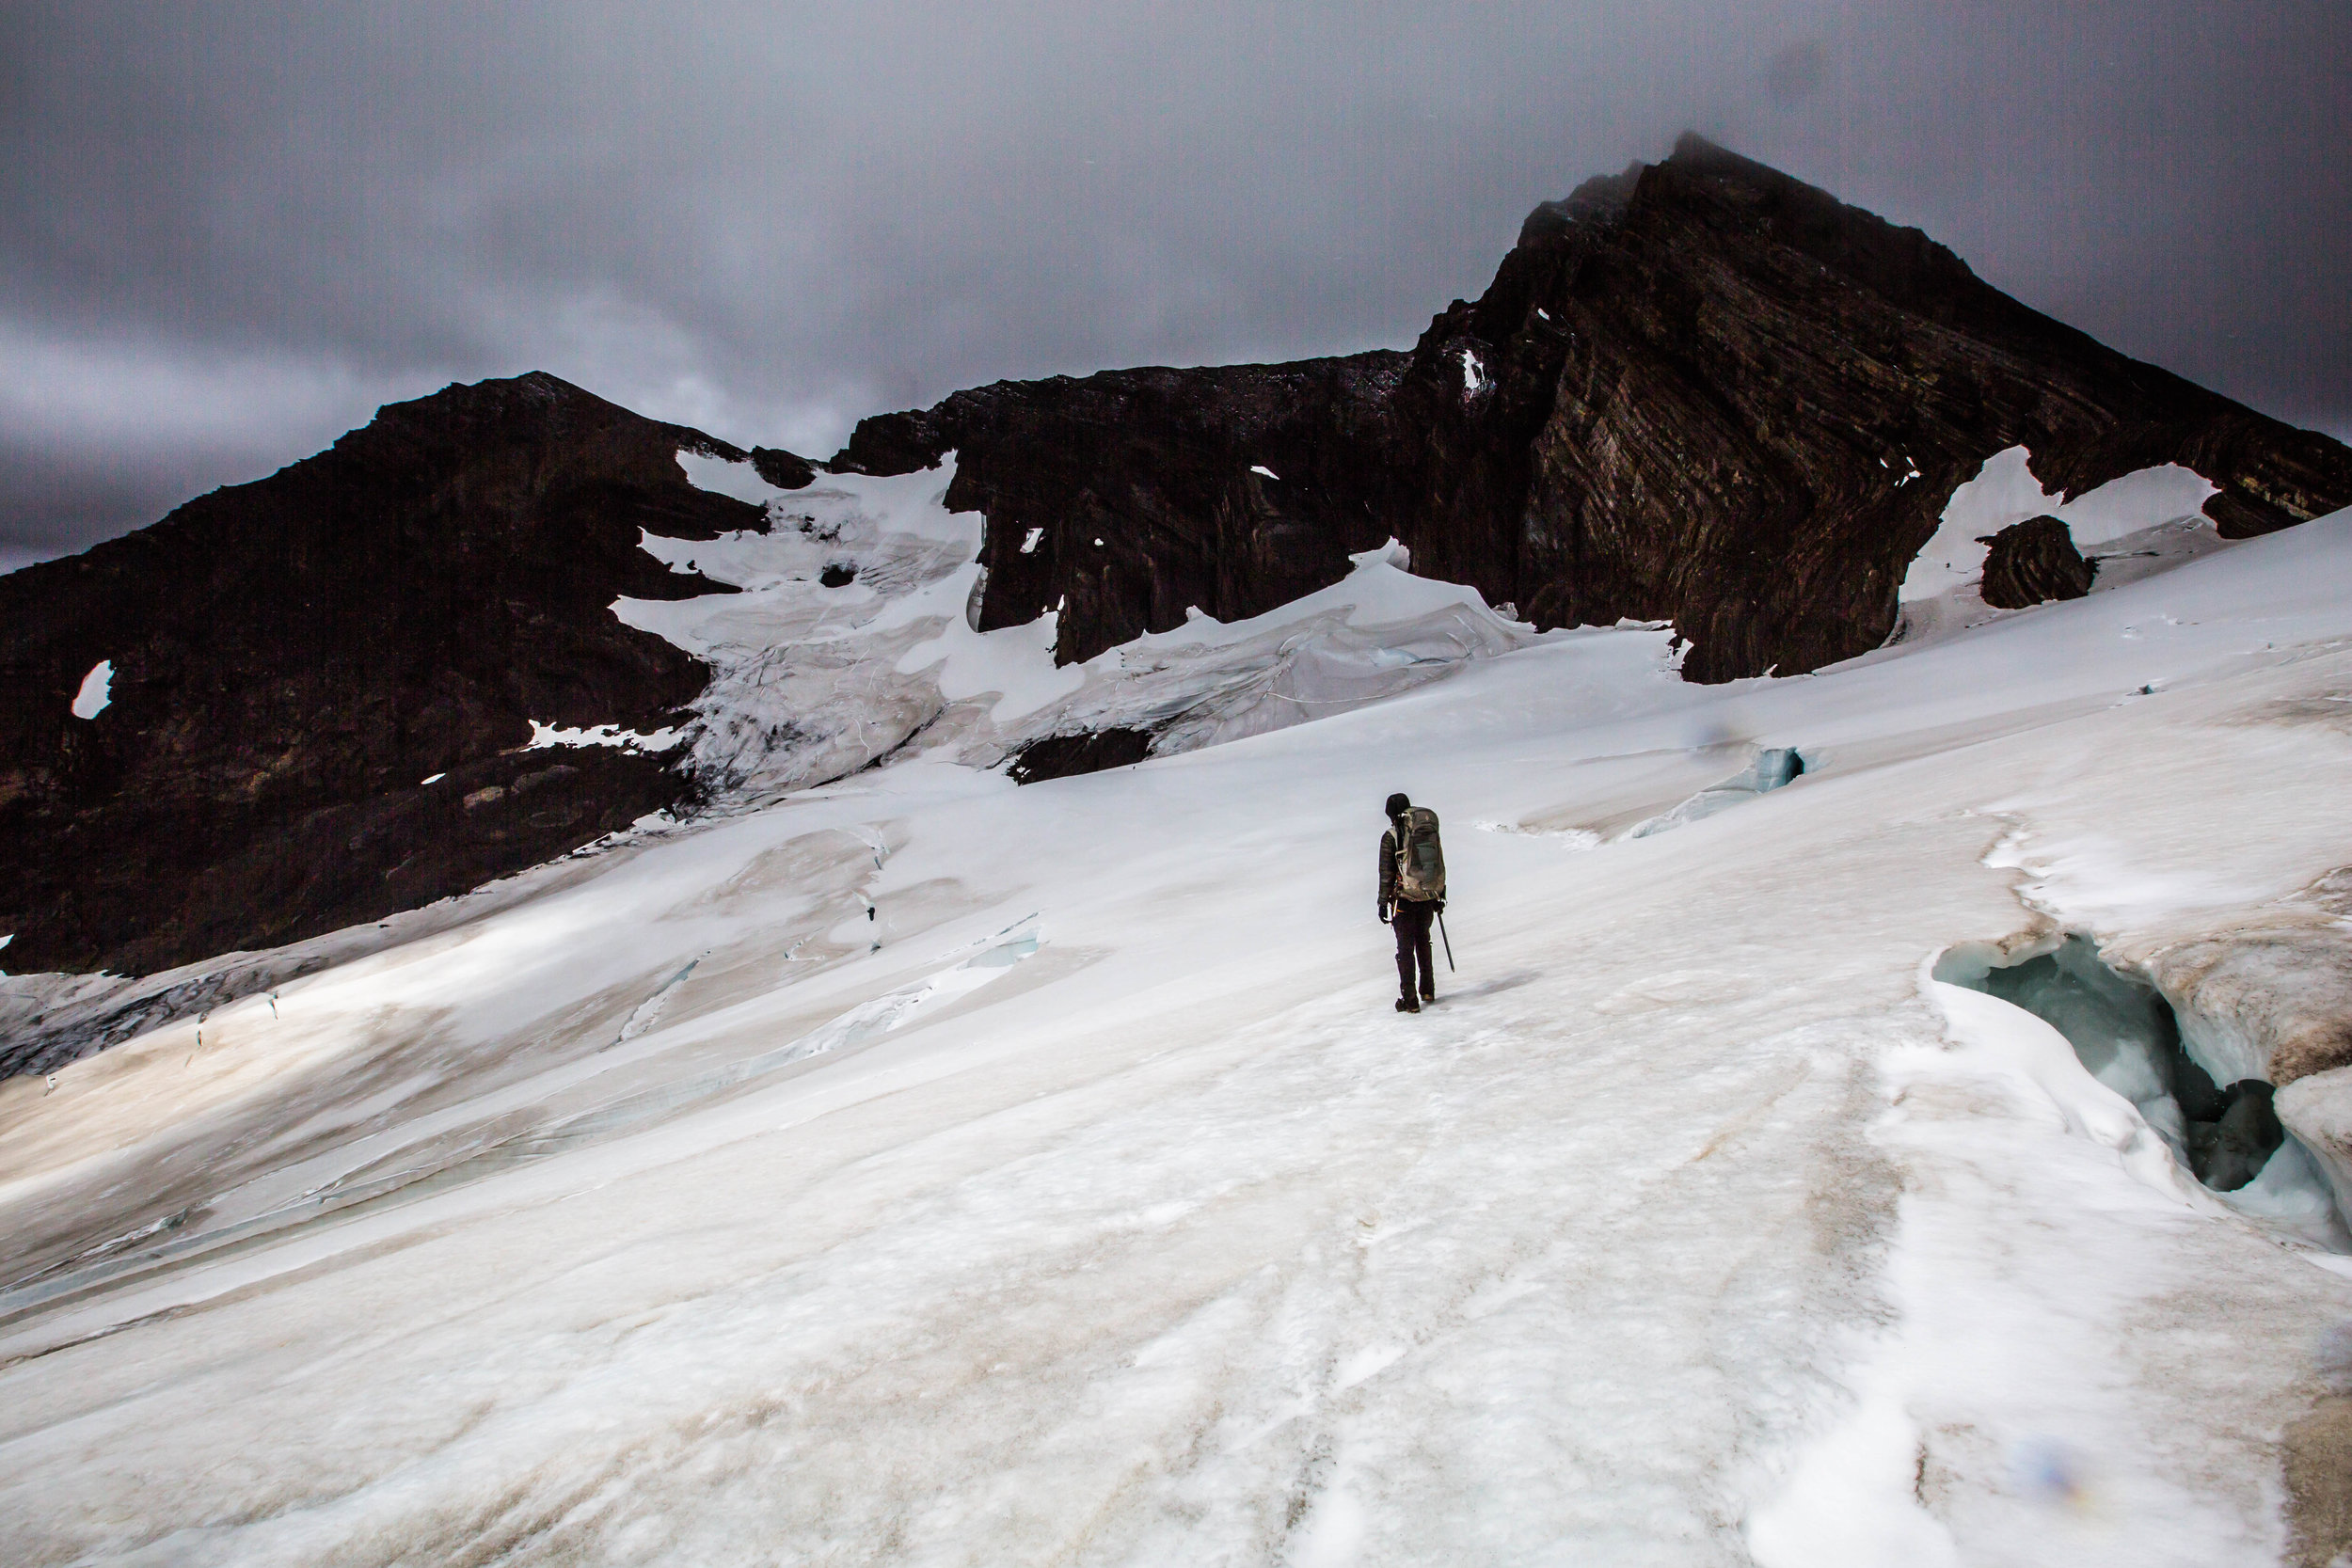 byron pass - Ultra Fiord race founder, Stjepan Pavicic, at the Byron Pass of the Chacabuco Glacier